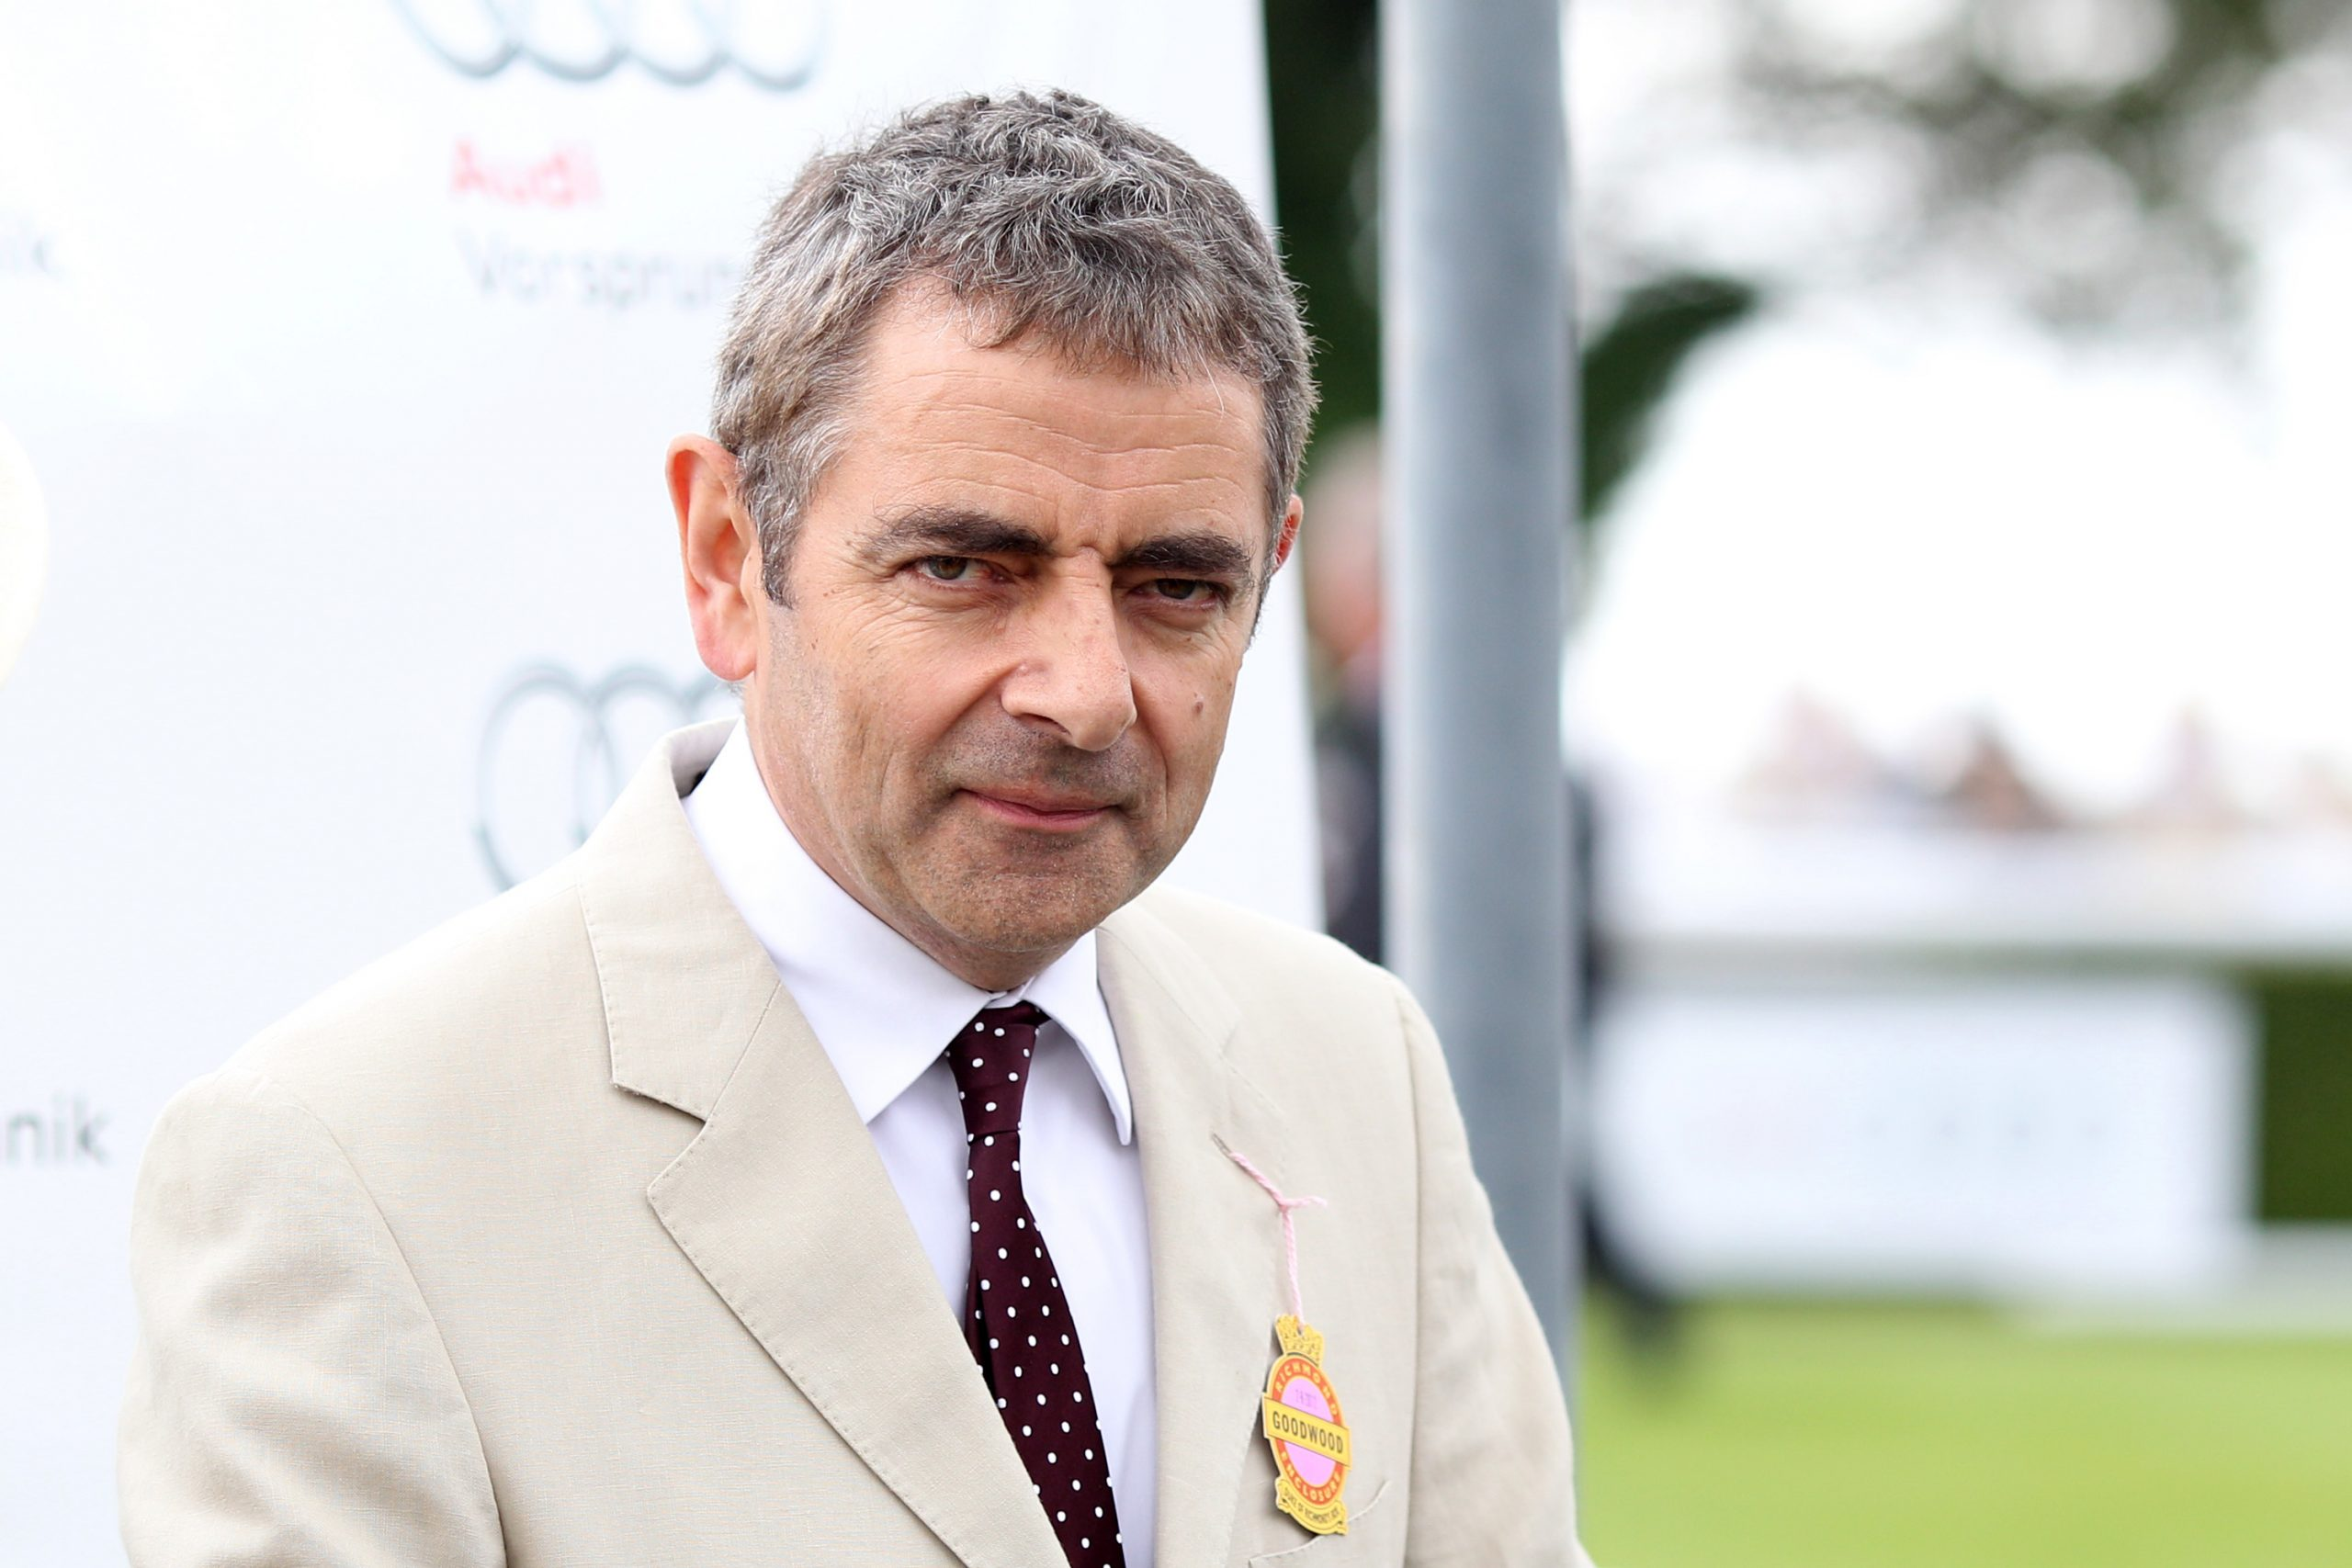 Rowan Atkinson - things you didn't know about the Mr Bean star